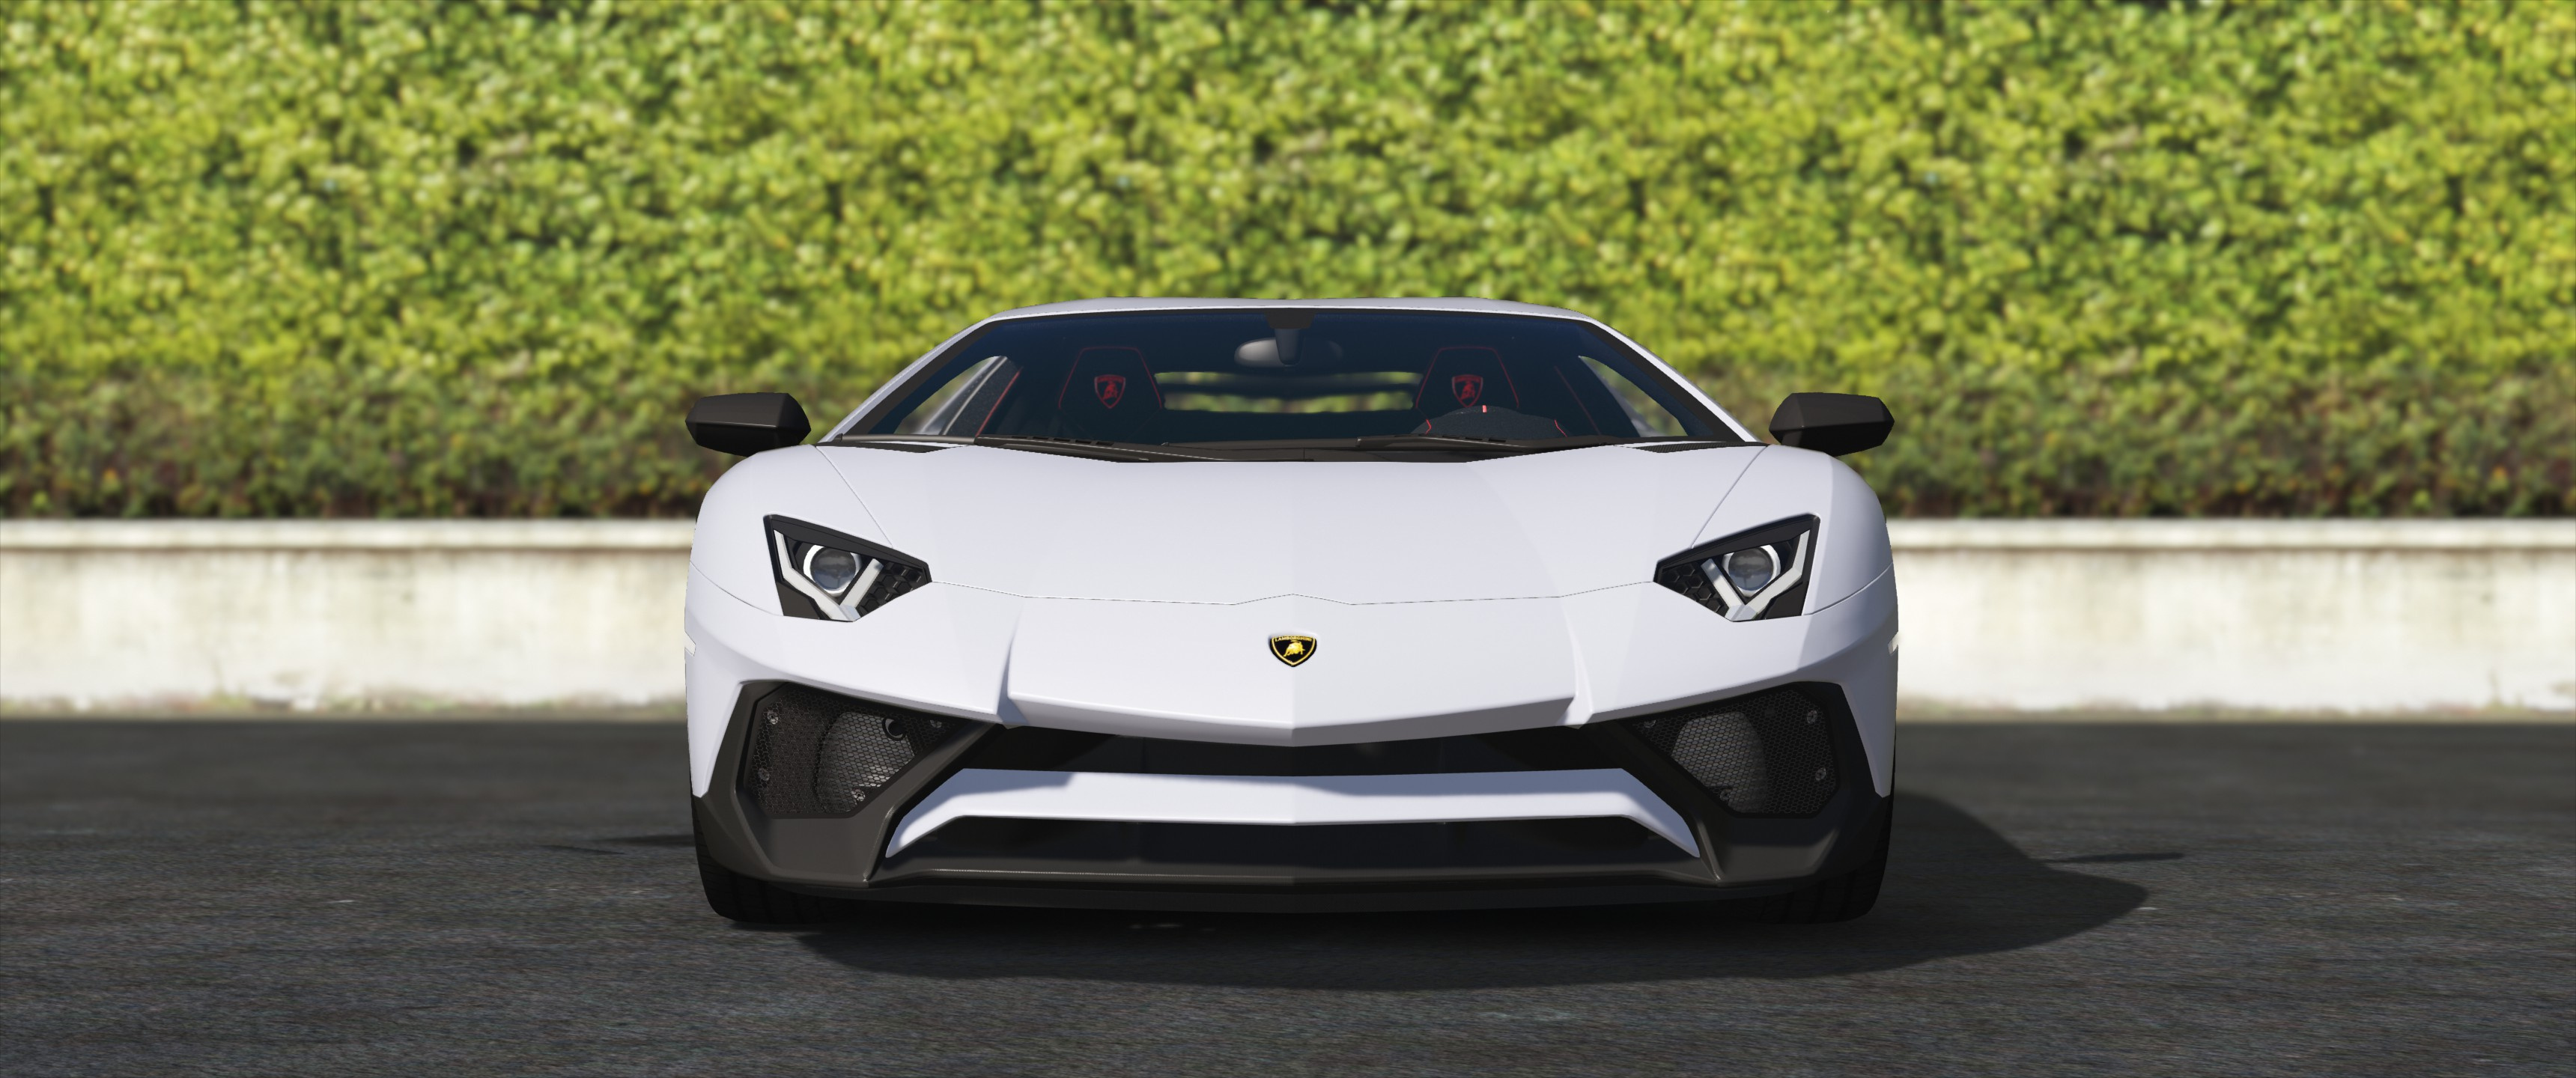 Lamborghini Aventador Lp 750 4 Sv 15 Add On Gta5 Mods Com